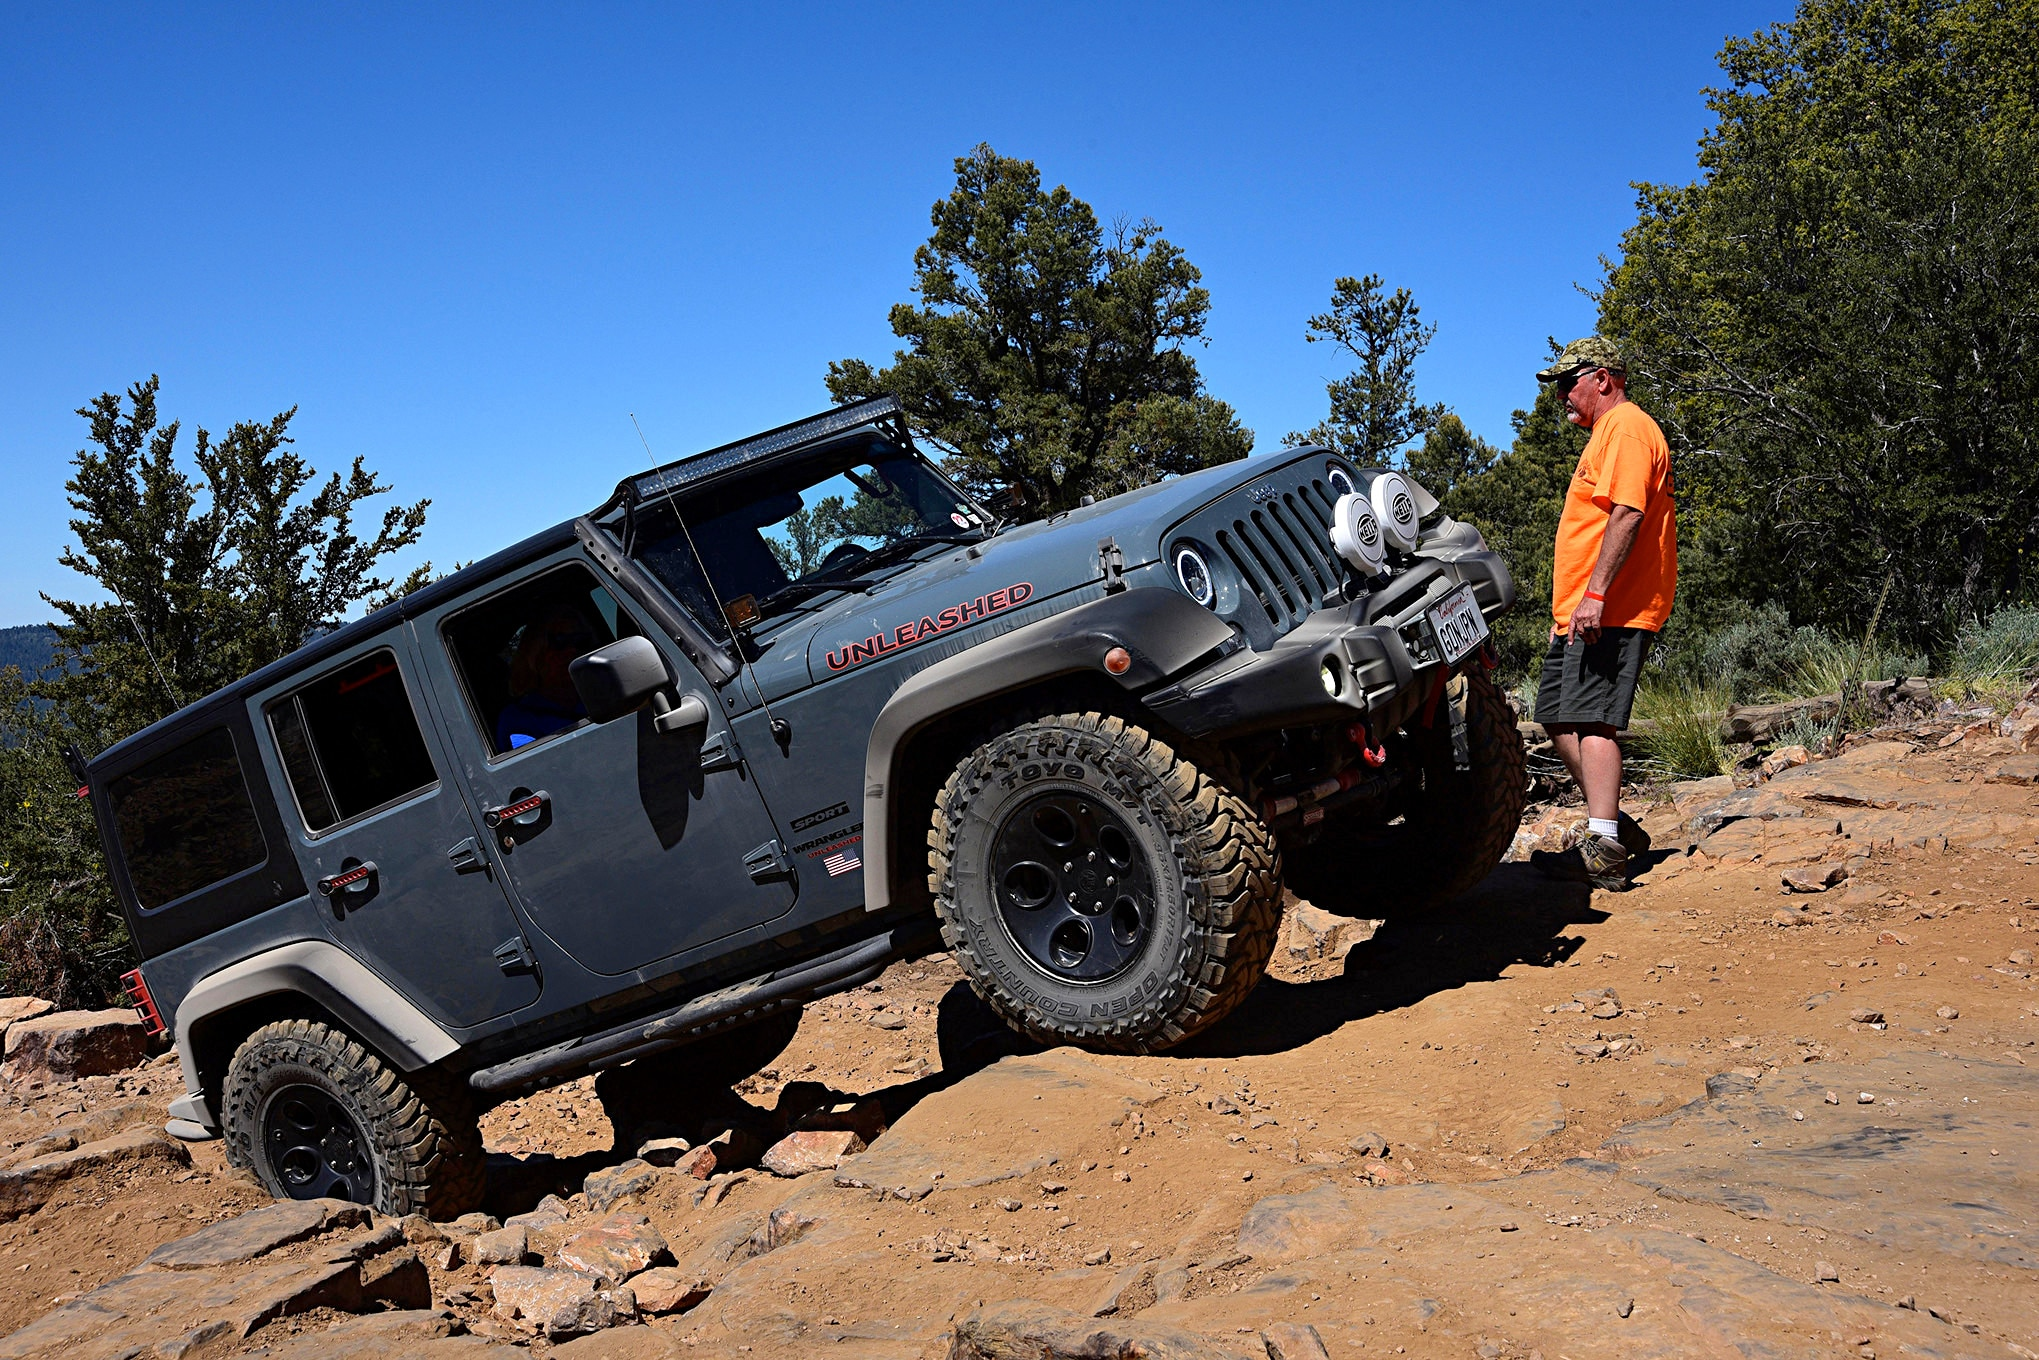 030 jeep event big bear forest fest 2019 inland empire